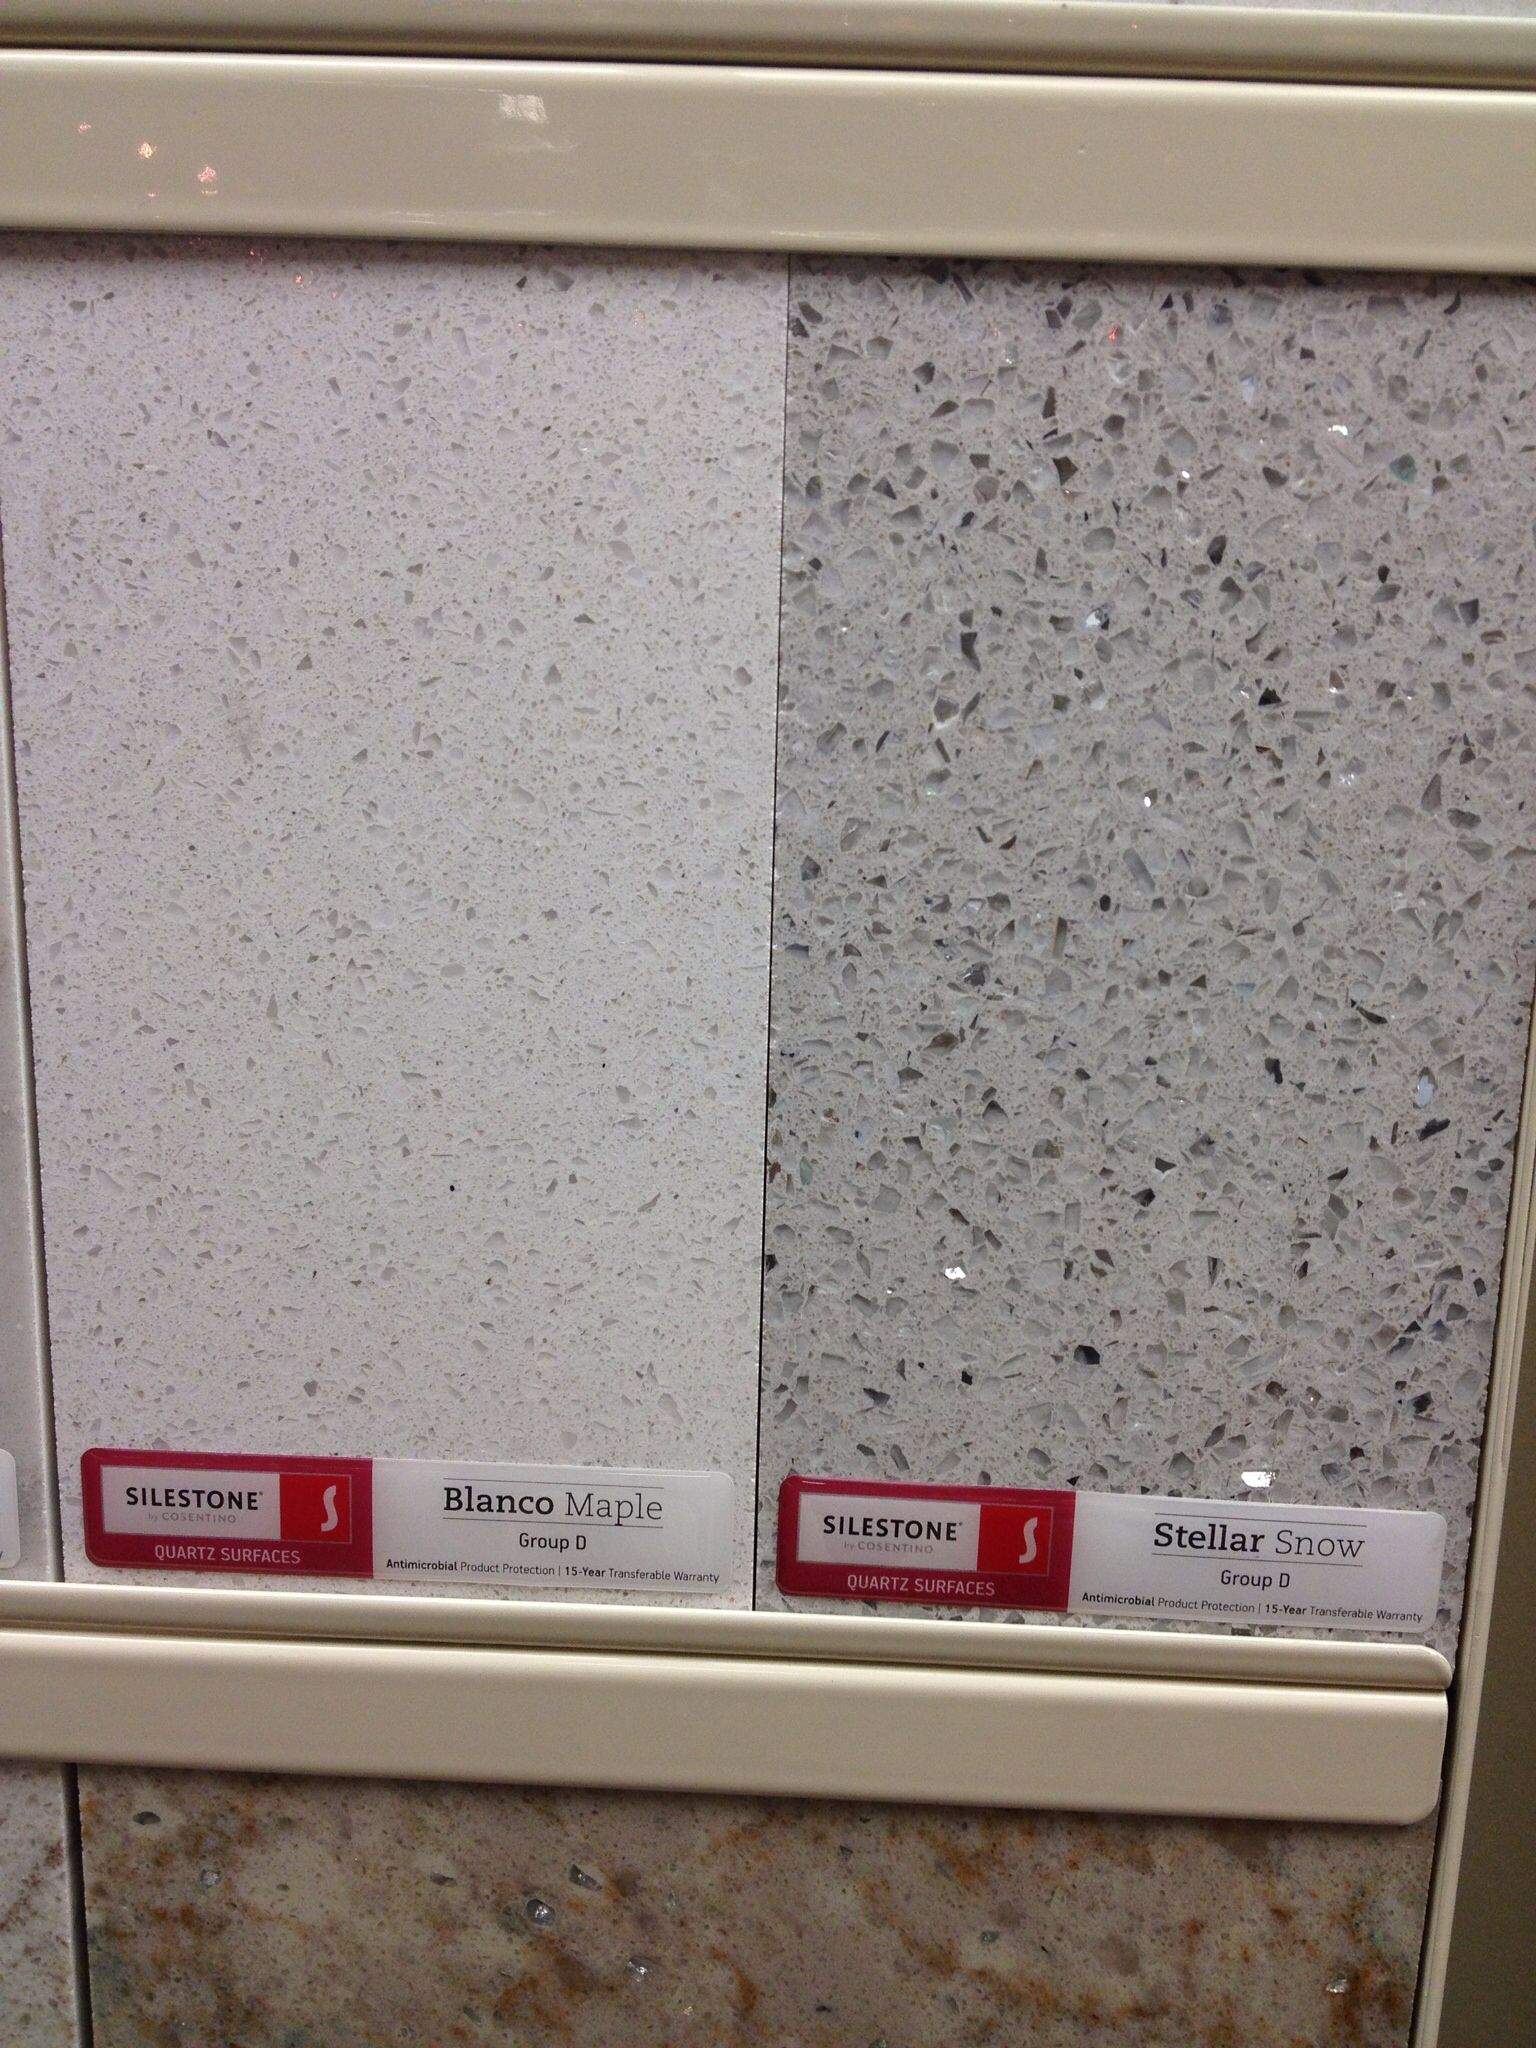 Silestone Colors I Like The Gray One